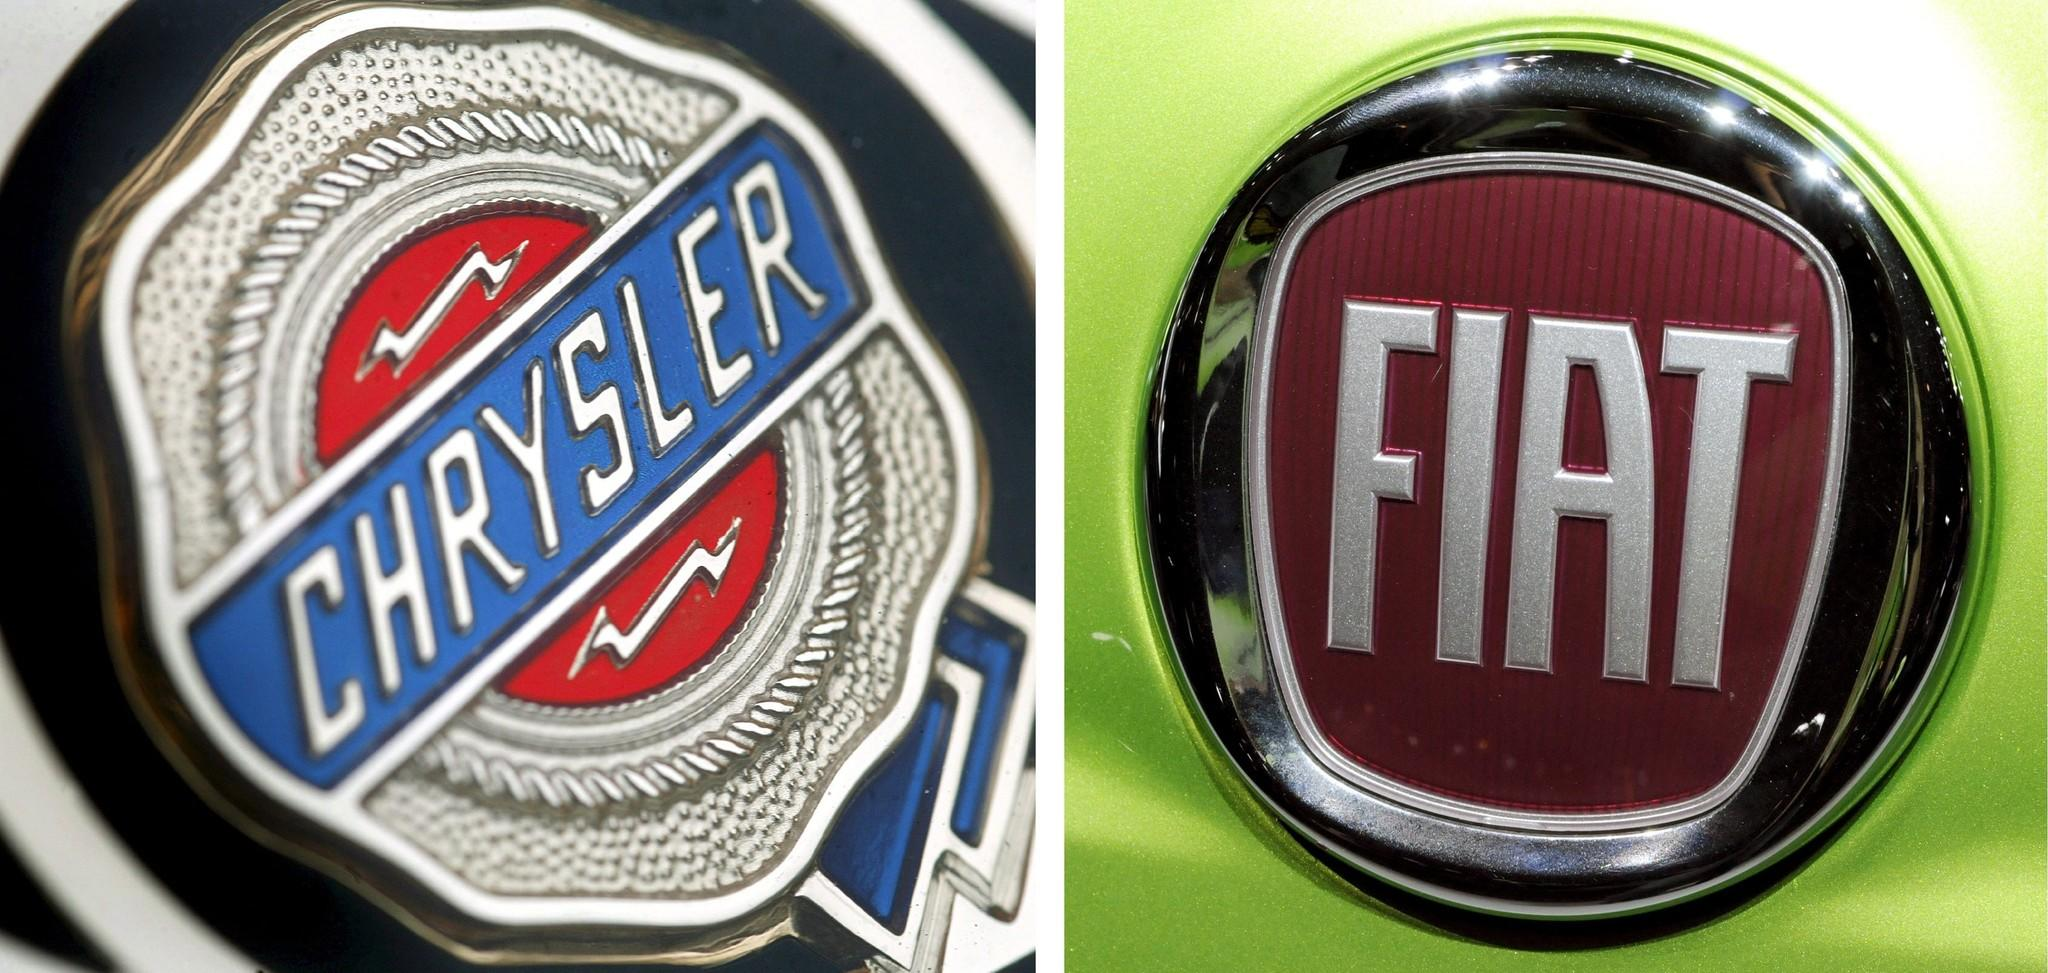 Chrysler goes italian as fiat pays 435 billion for full control fiat has a deal with a uaw trust to buy out the remaining shares of chrysler biocorpaavc